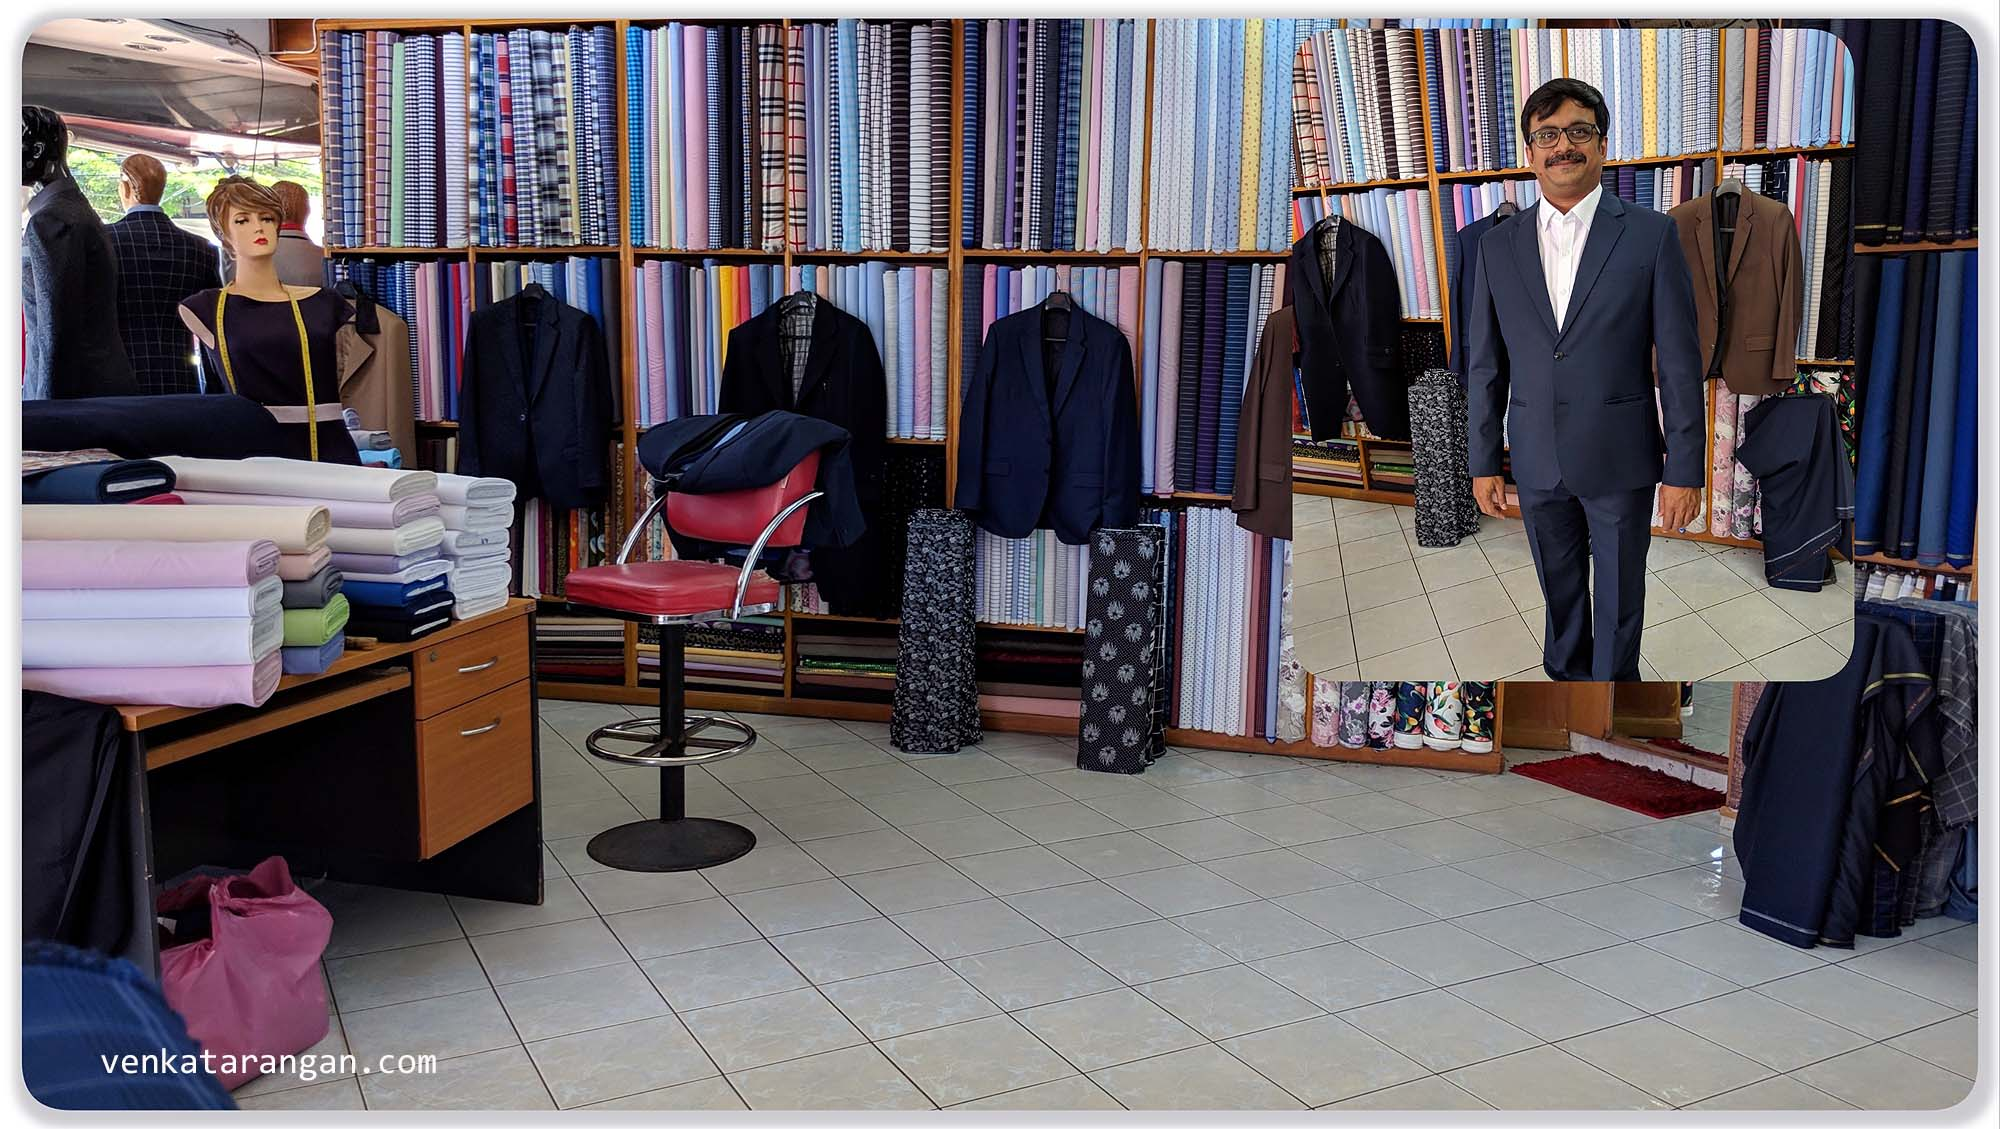 Tailor Shop where I purchased a suit - happy with the material and stitching but not the service